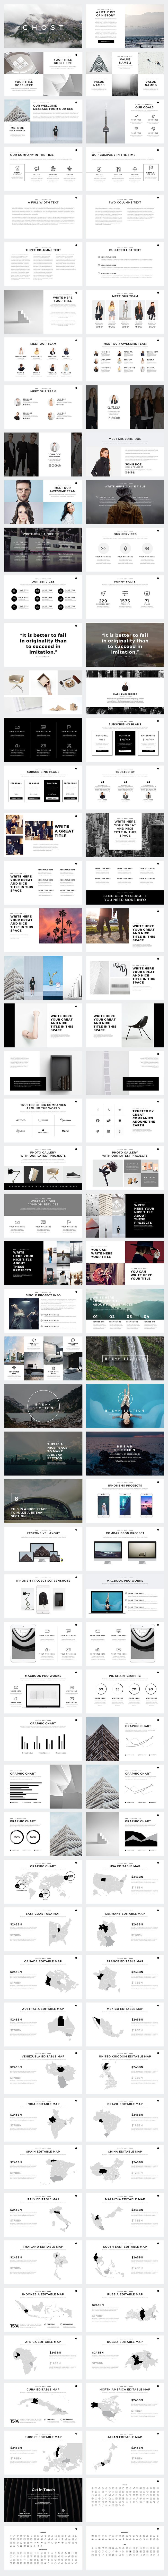 Ghost Minimal Powerpoint Template by SlidePro on @creativemarket